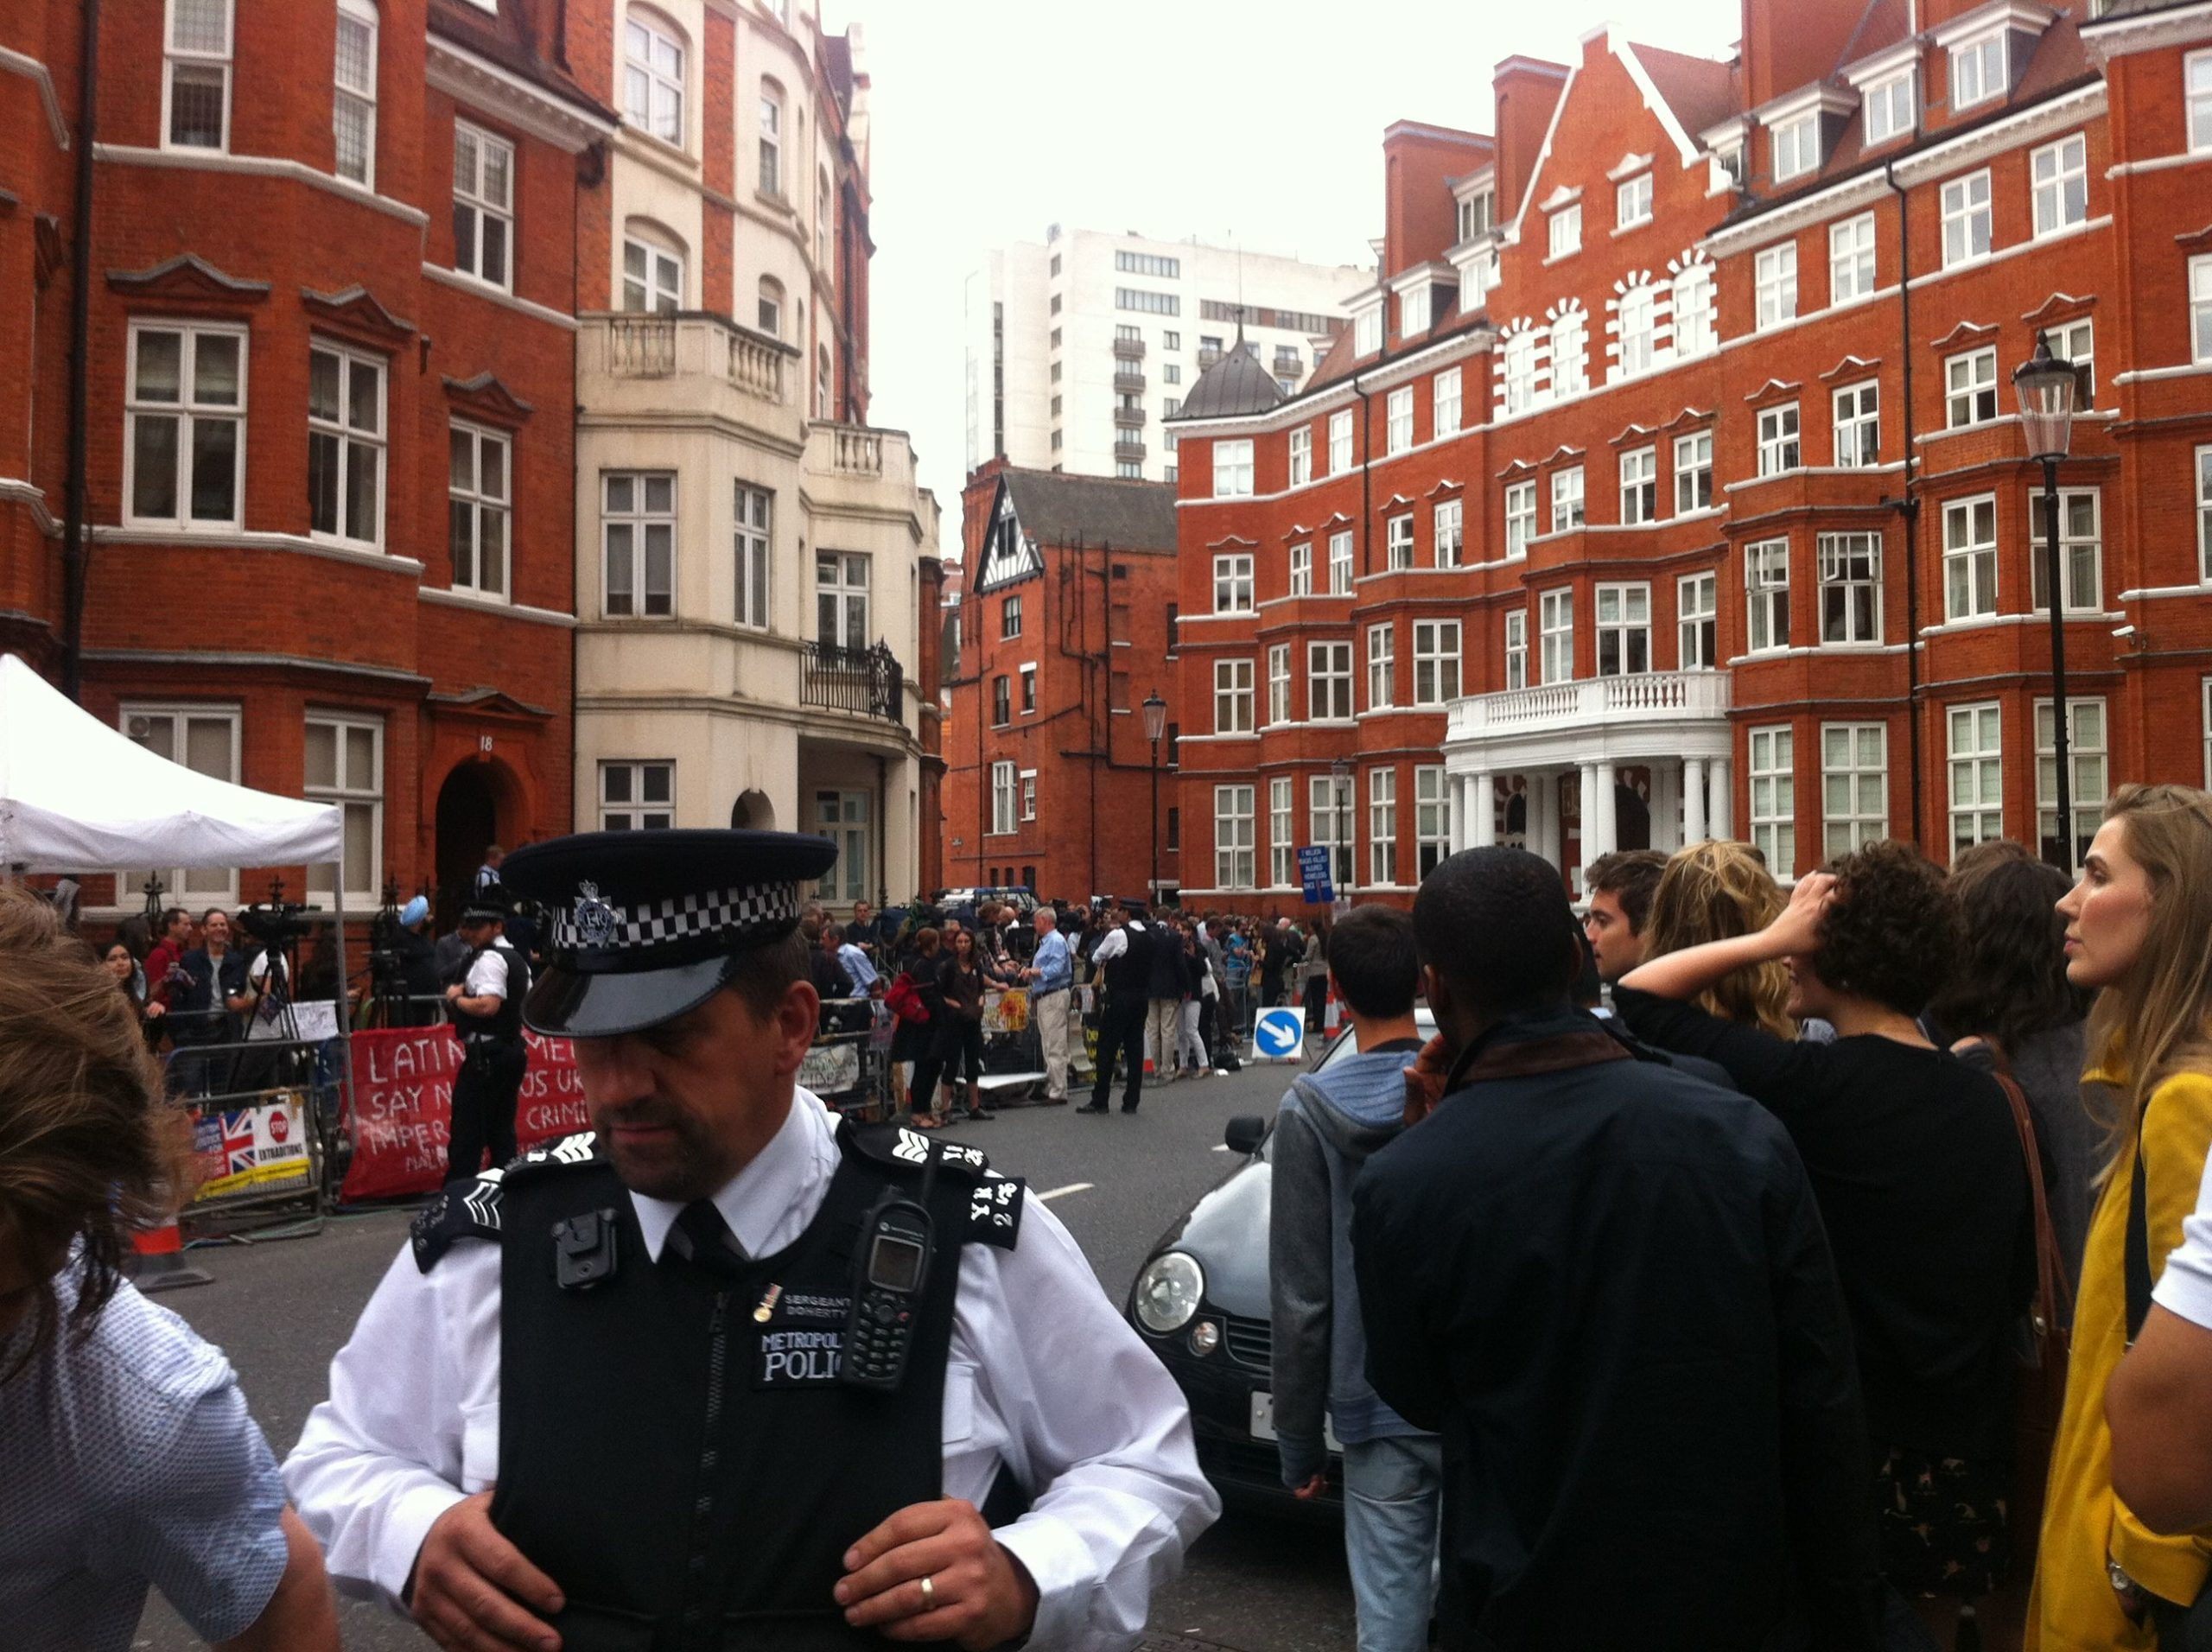 Police and protestors scaled